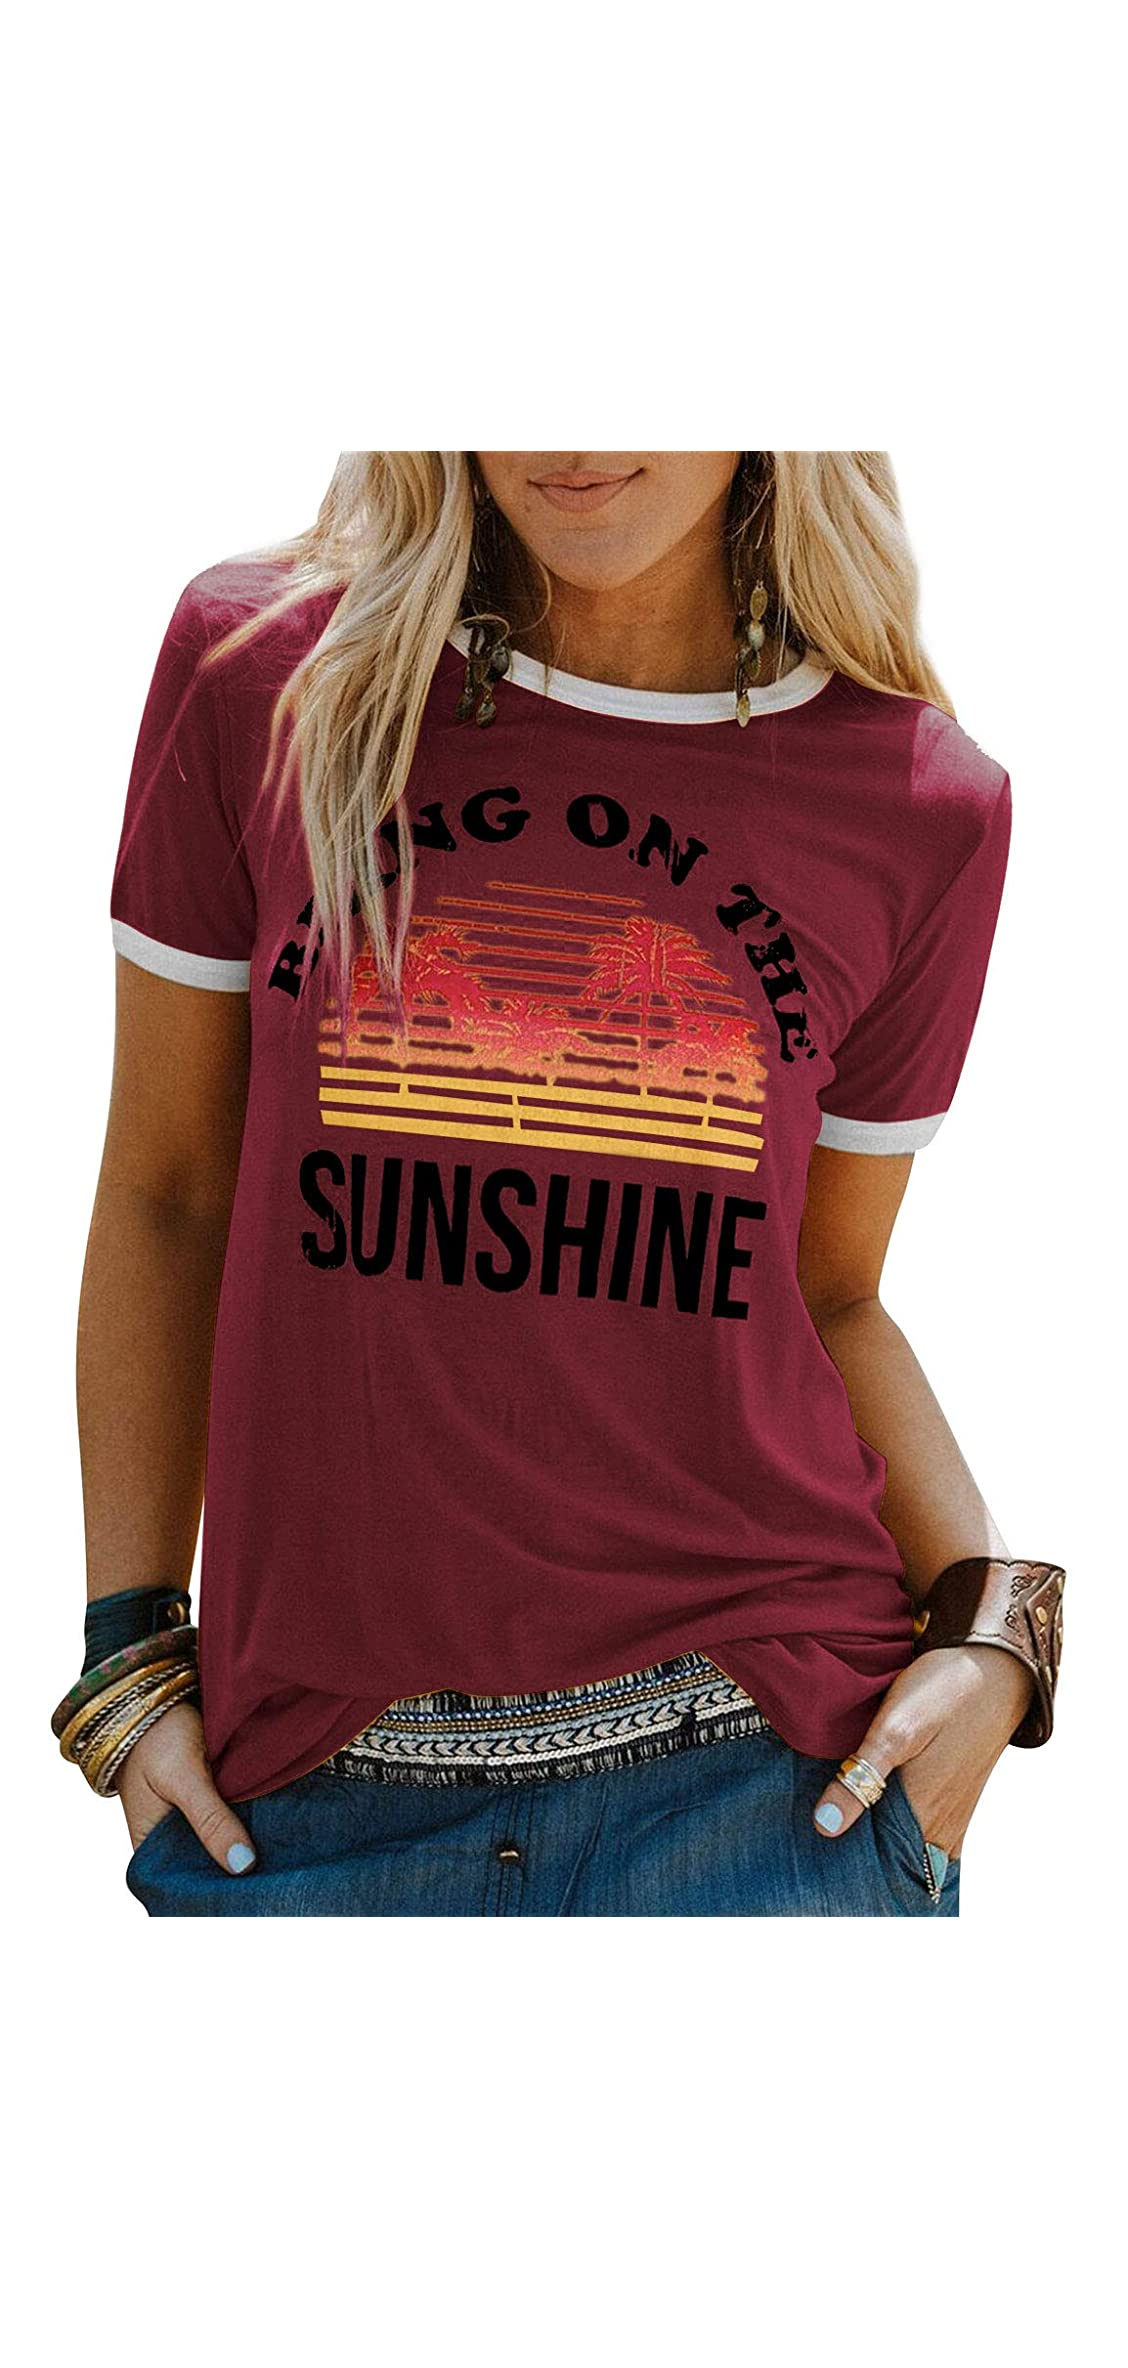 Bring On The Sunshine Graphic Long Sleeves Tees Blouses